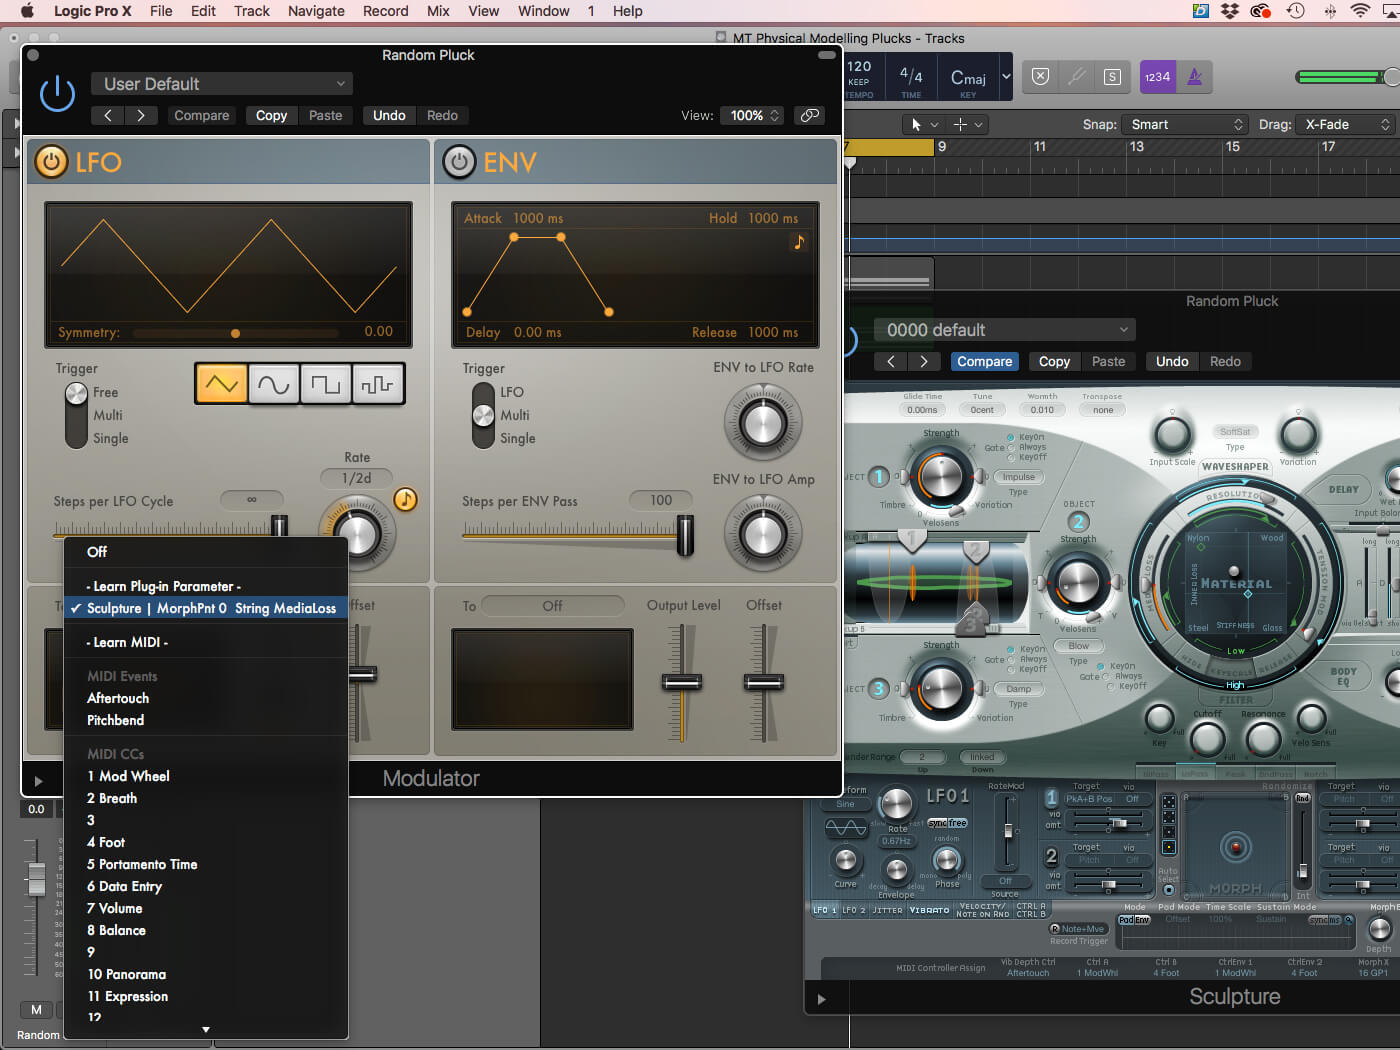 Physical Modelling Plucks in Logic Pro X: step-by-step